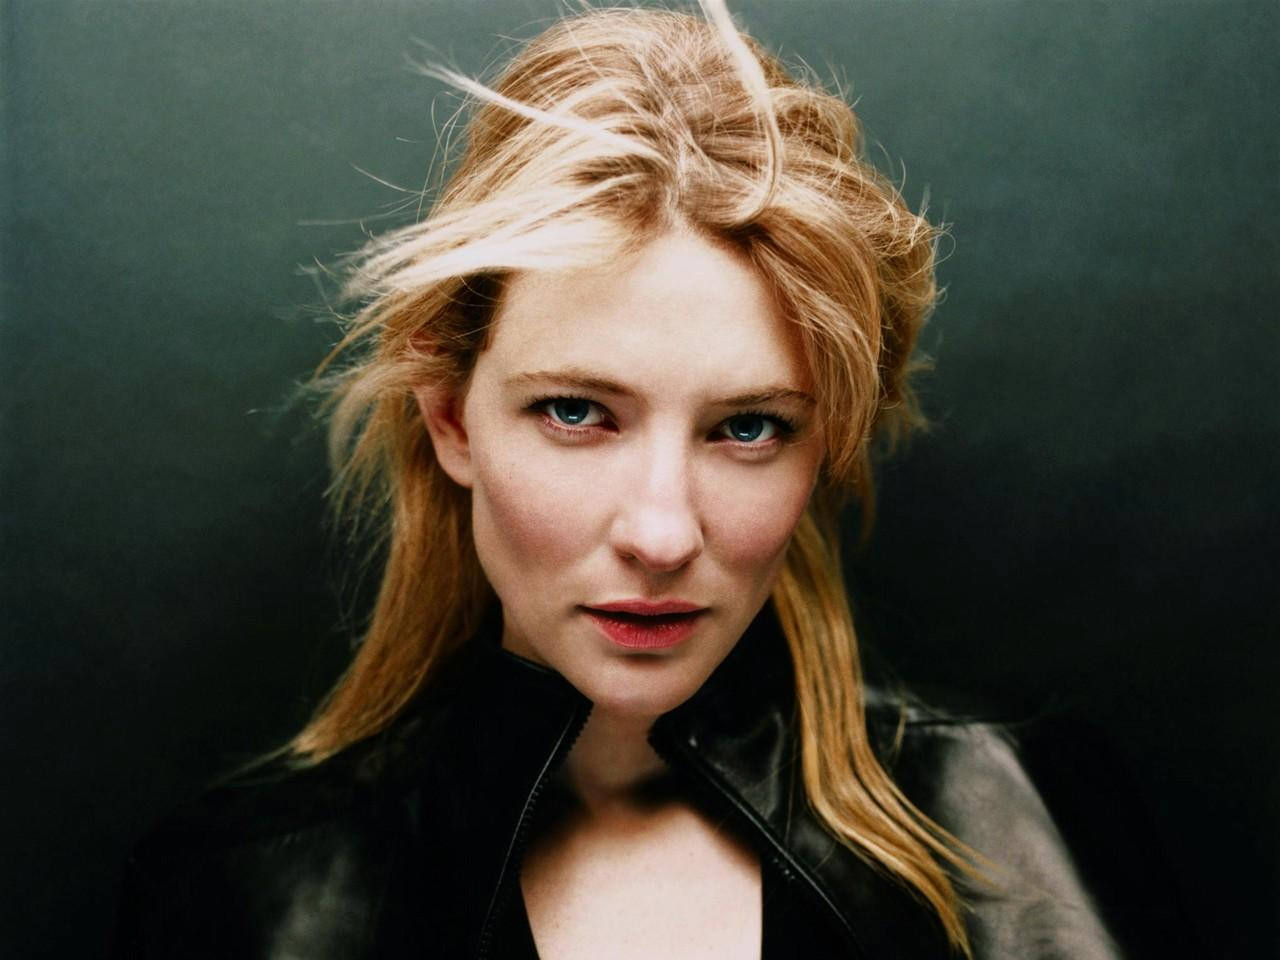 Cate Blanchett Hot Pictures, Photo Gallery & Wallpapers Cate Blanchett